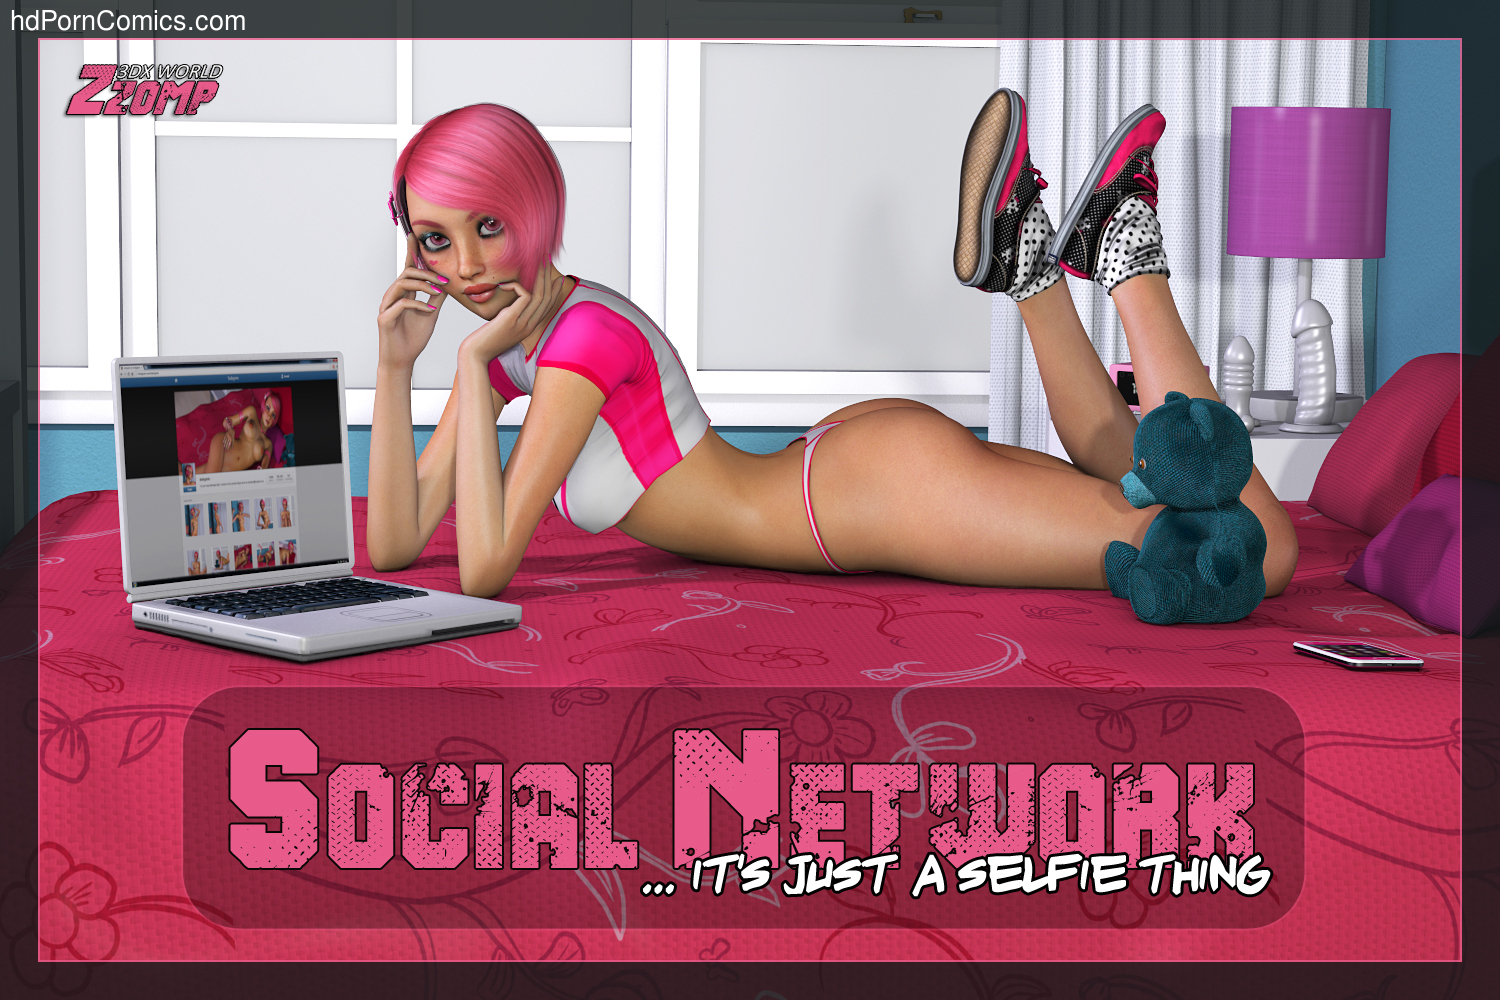 Zzomp- Dolly Pink Social Network 1-227 free sex comic